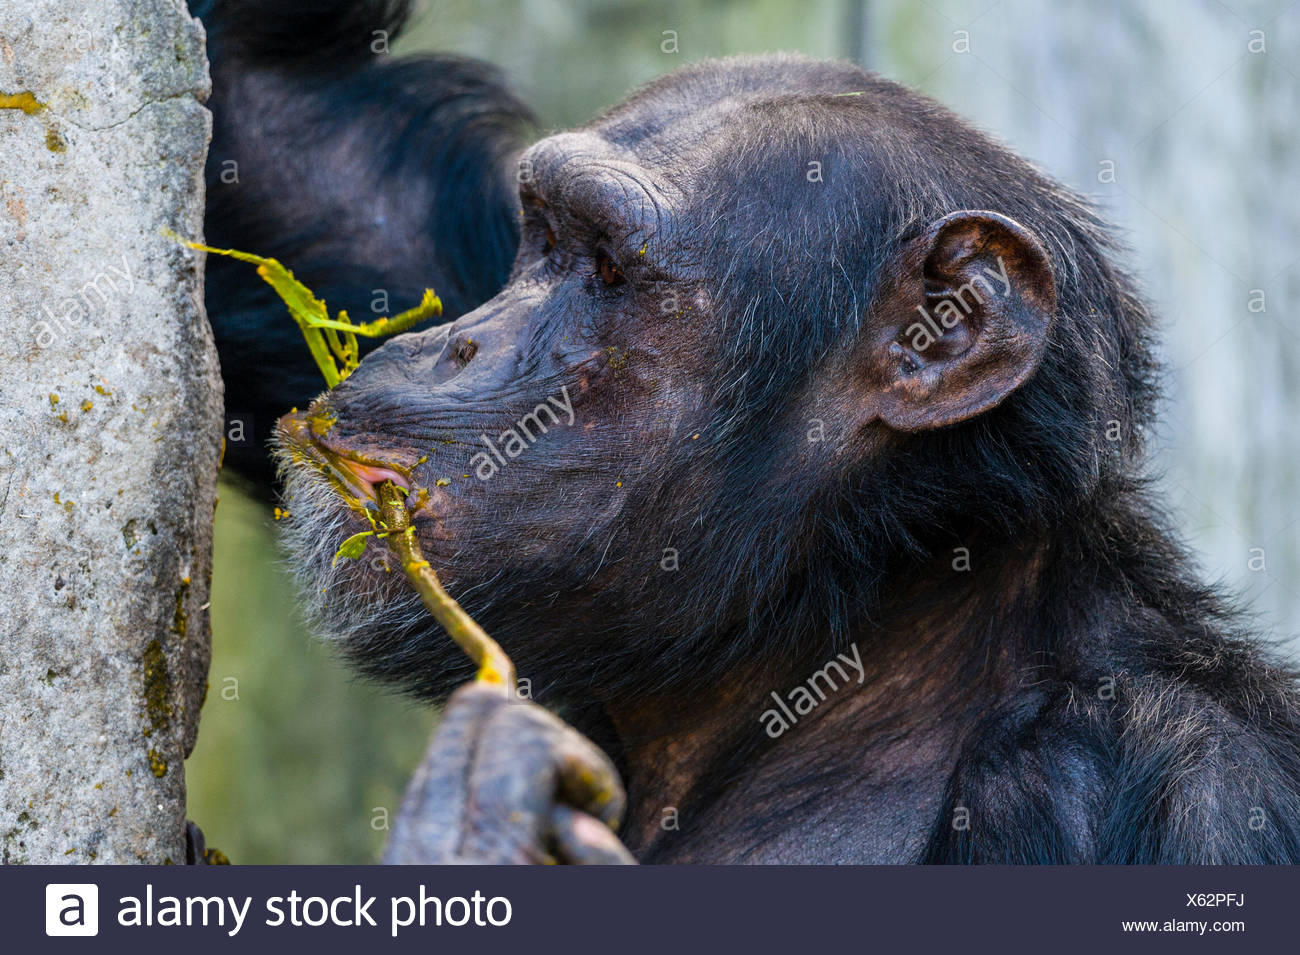 A Chimpanzee using a twig as an tool to collect food from an artificial termite mound. - Stock Image